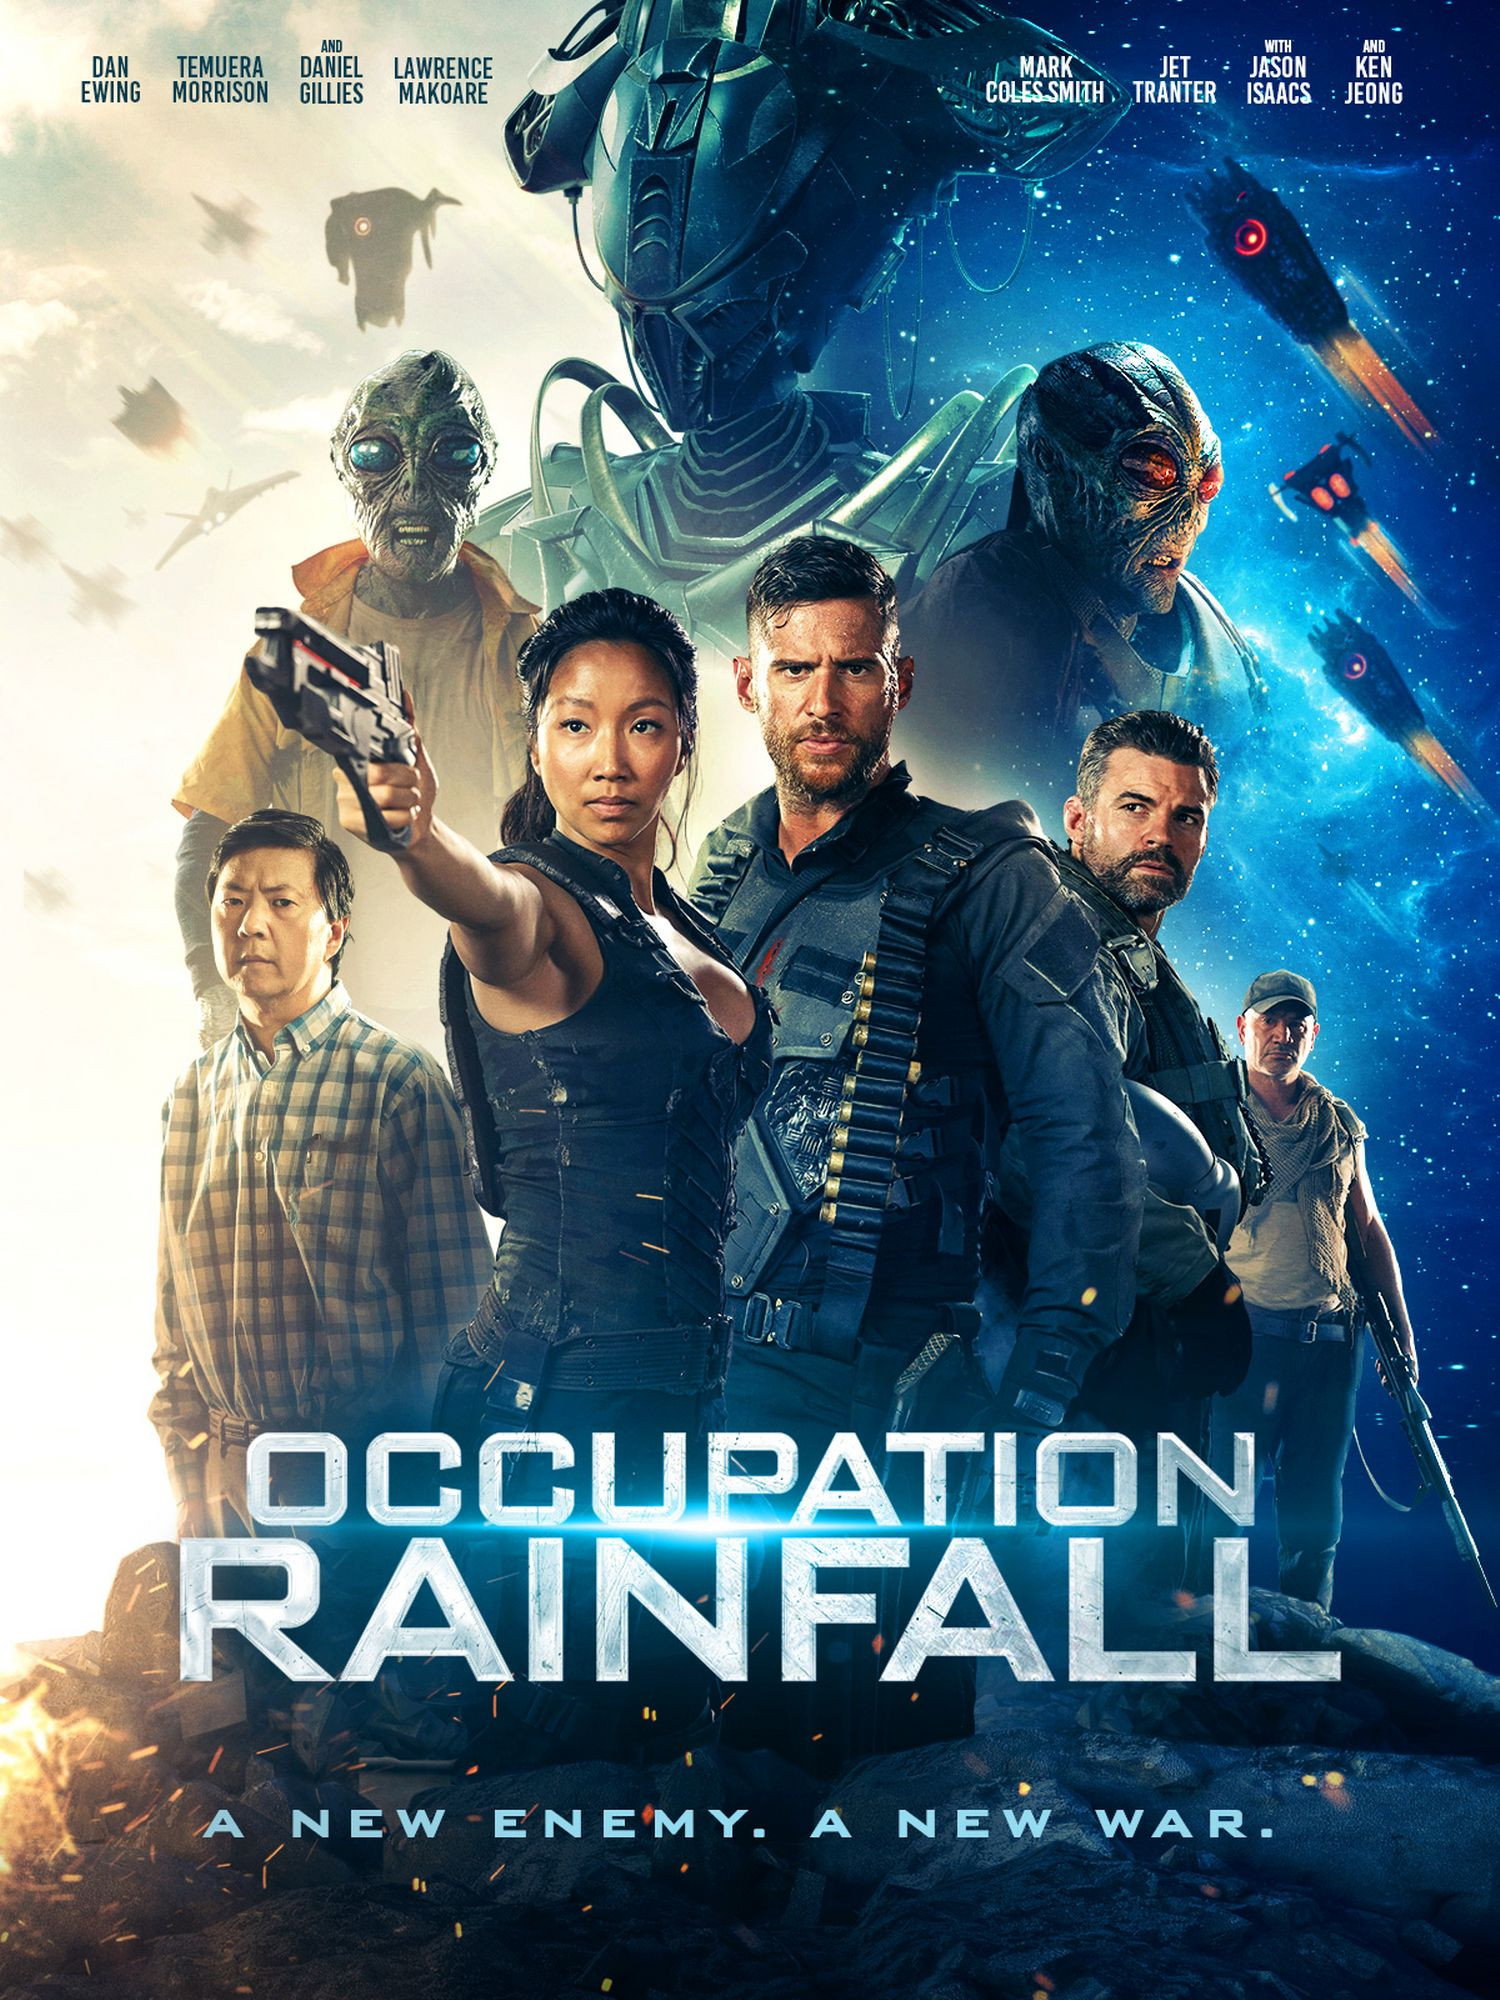 Occupation Rainfall (Signature Entertainment) Digital Poster